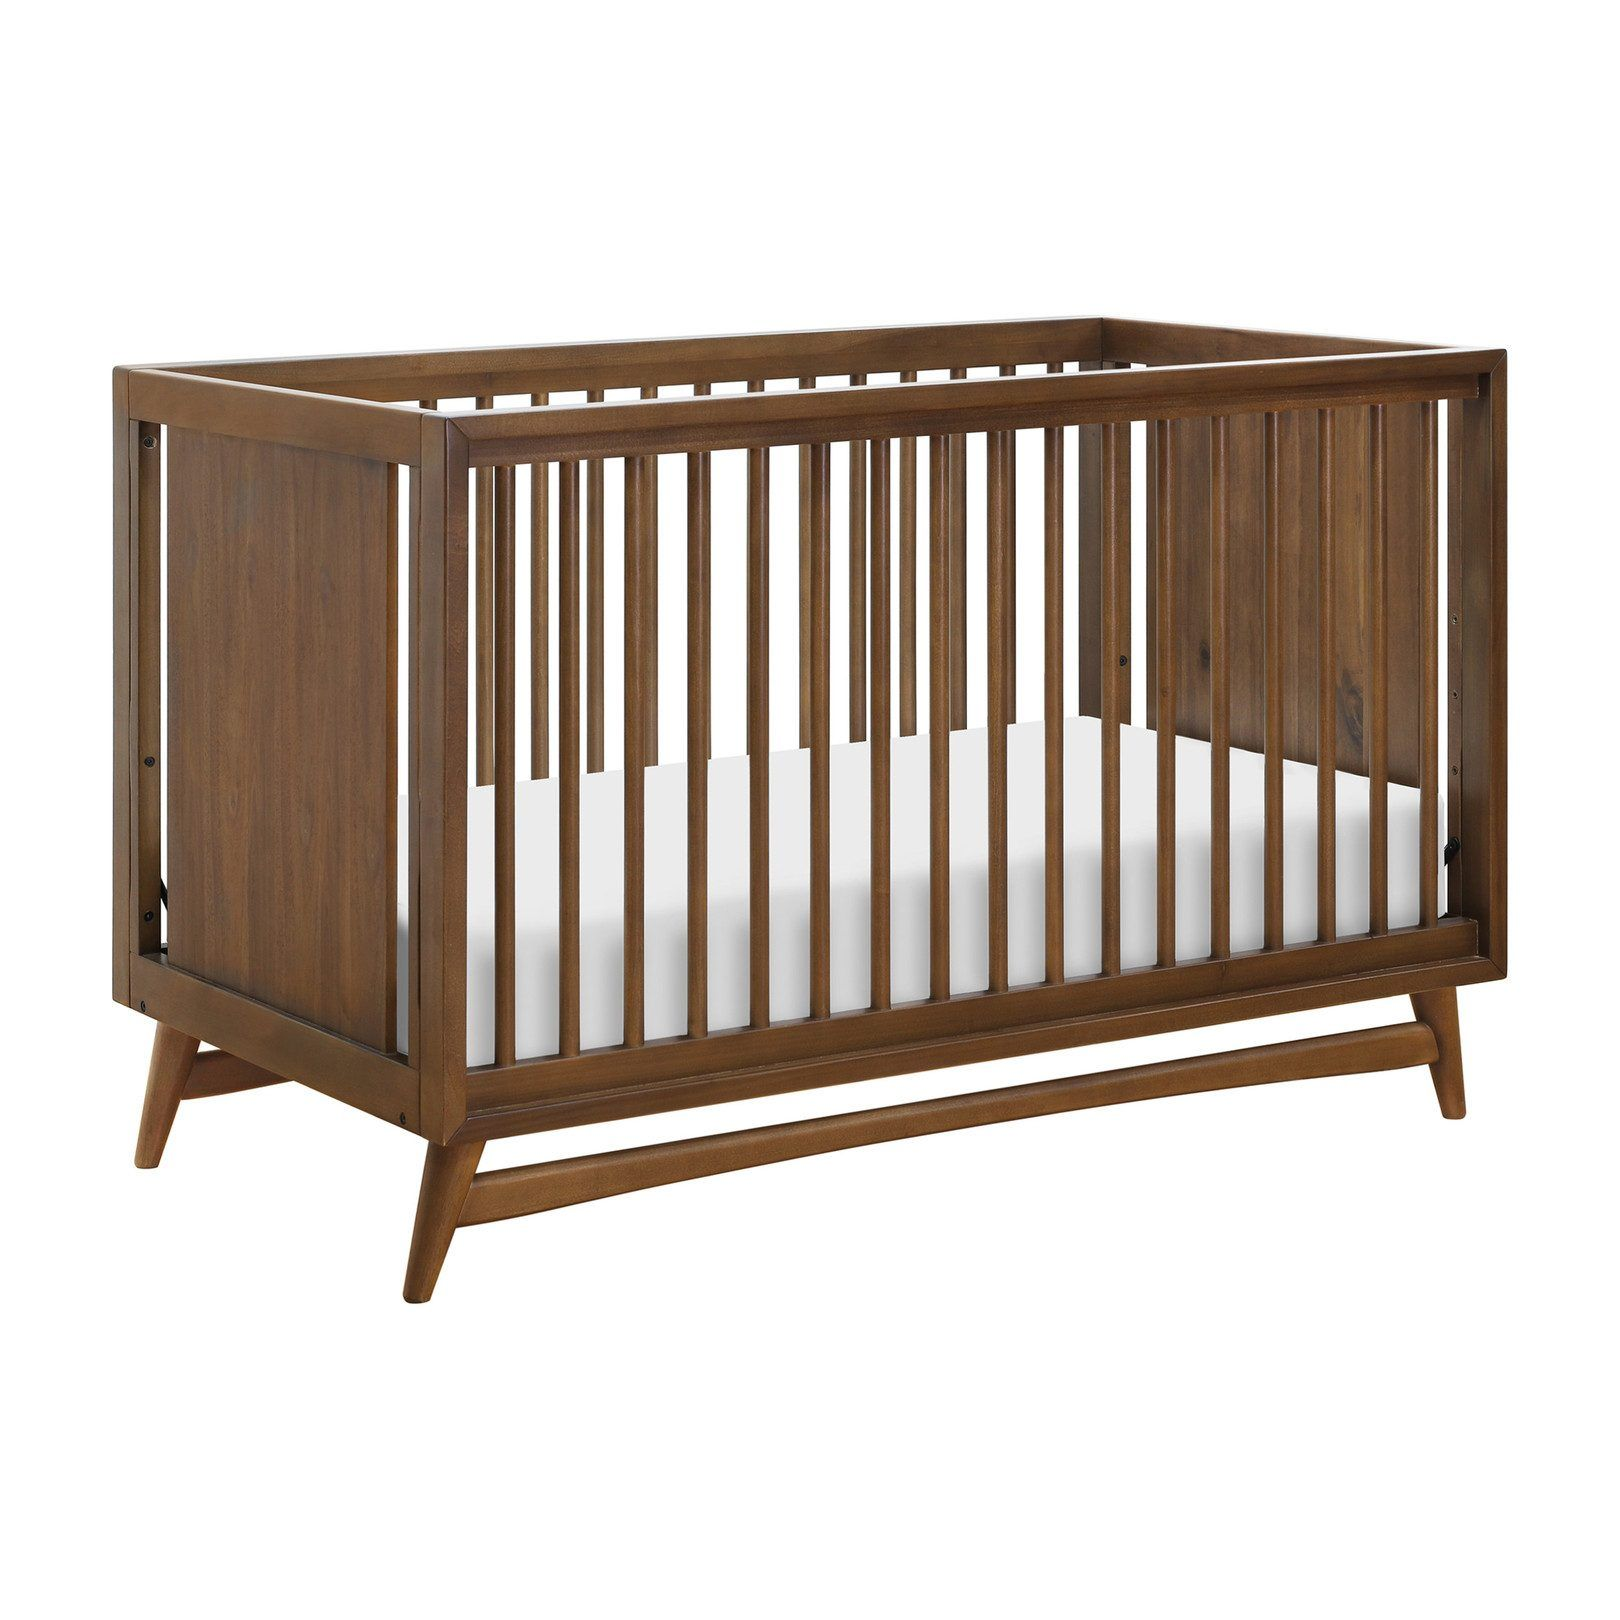 Babyletto Peggy 3 In 1 Convertible Crib With Toddler Bed Conversion Kit Natural Walnut Convertible Crib Baby Cribs Convertible Cribs